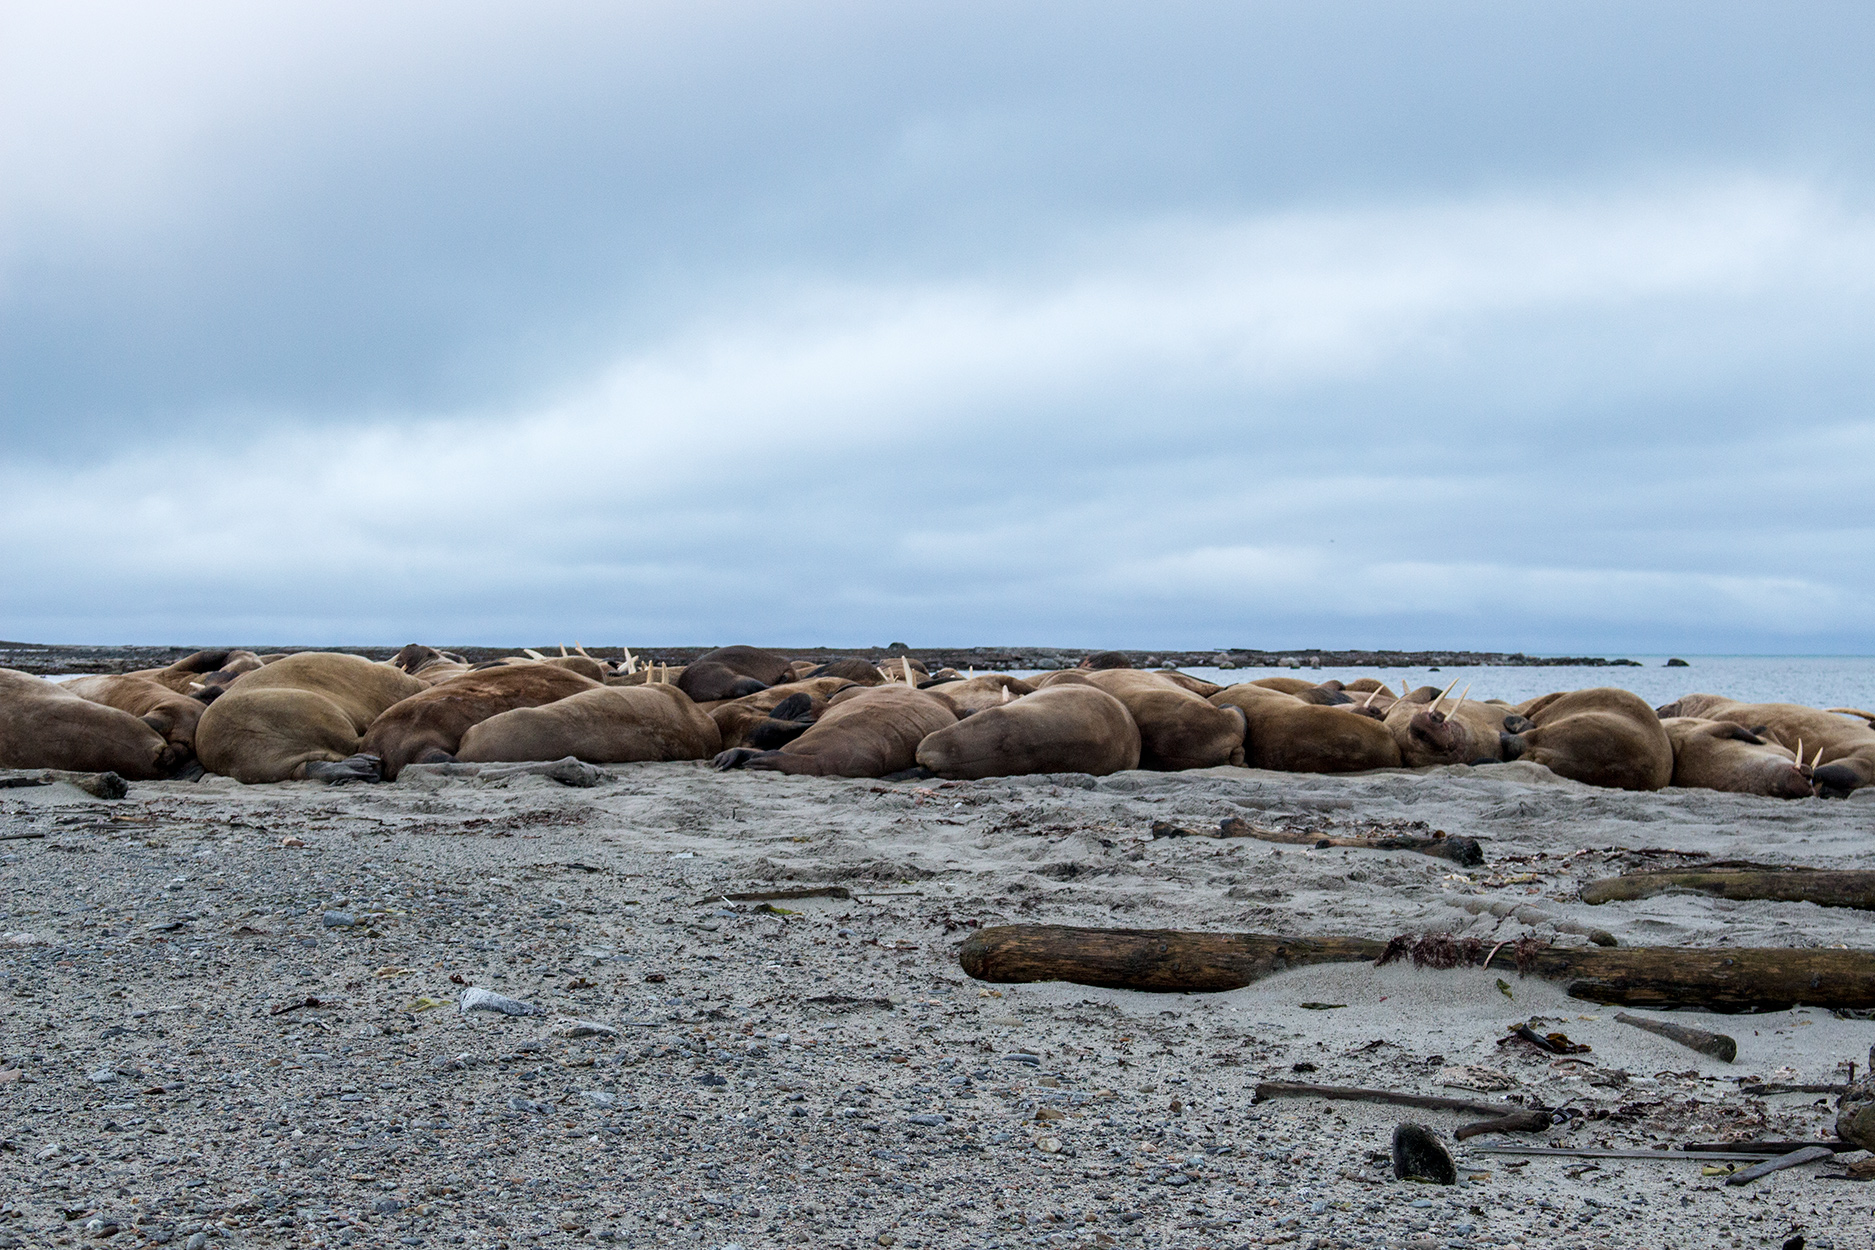 Walruses basking on the shore in smeerenburg, Svalbard